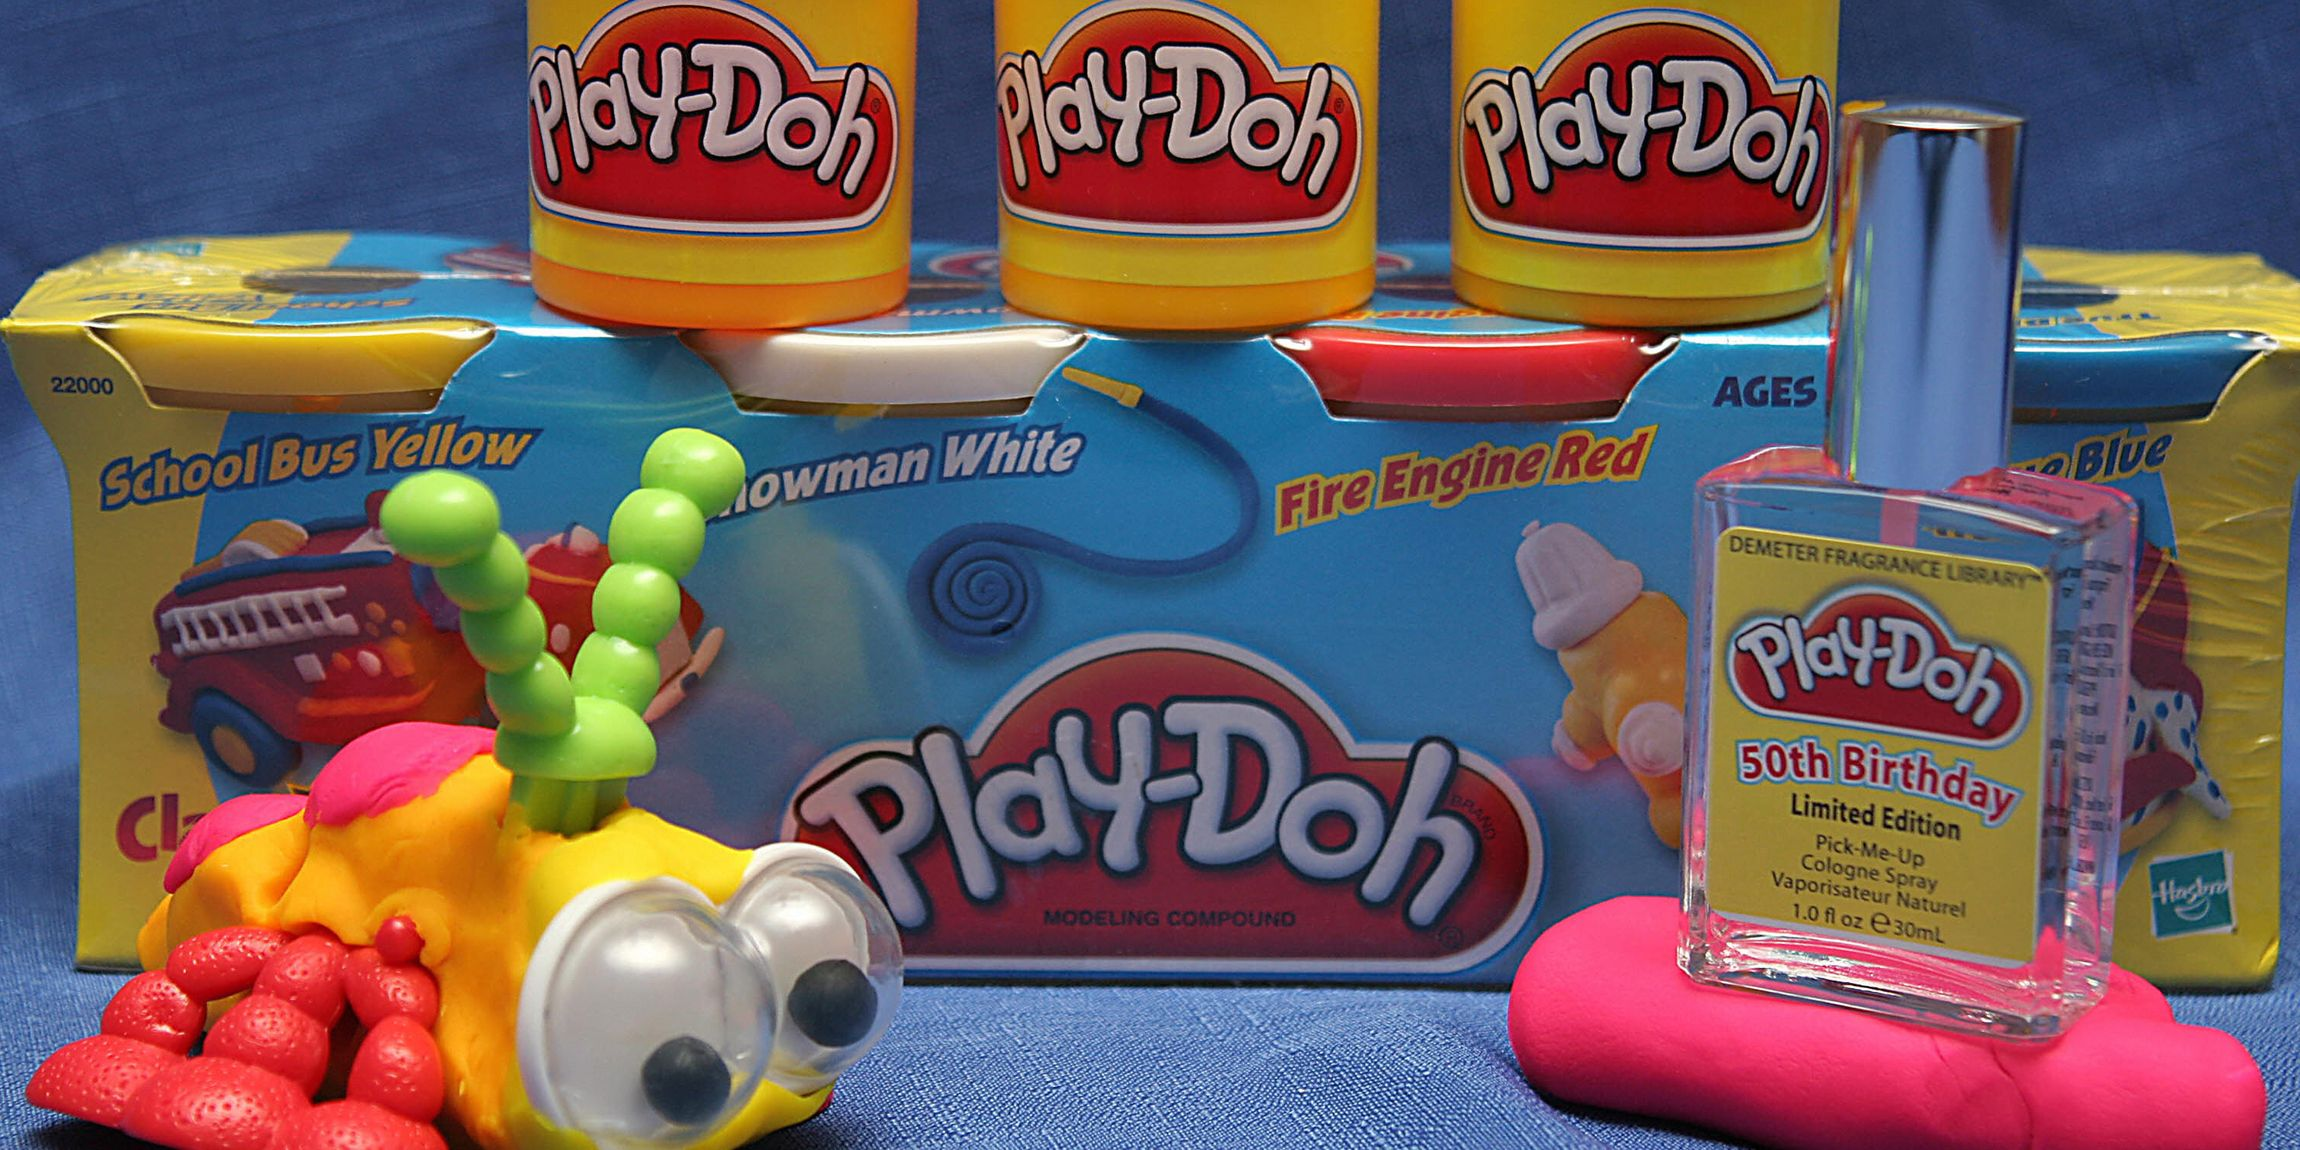 15 Fun Facts You Never Knew About Play-Doh - Everything You Need to Know About Play-Doh